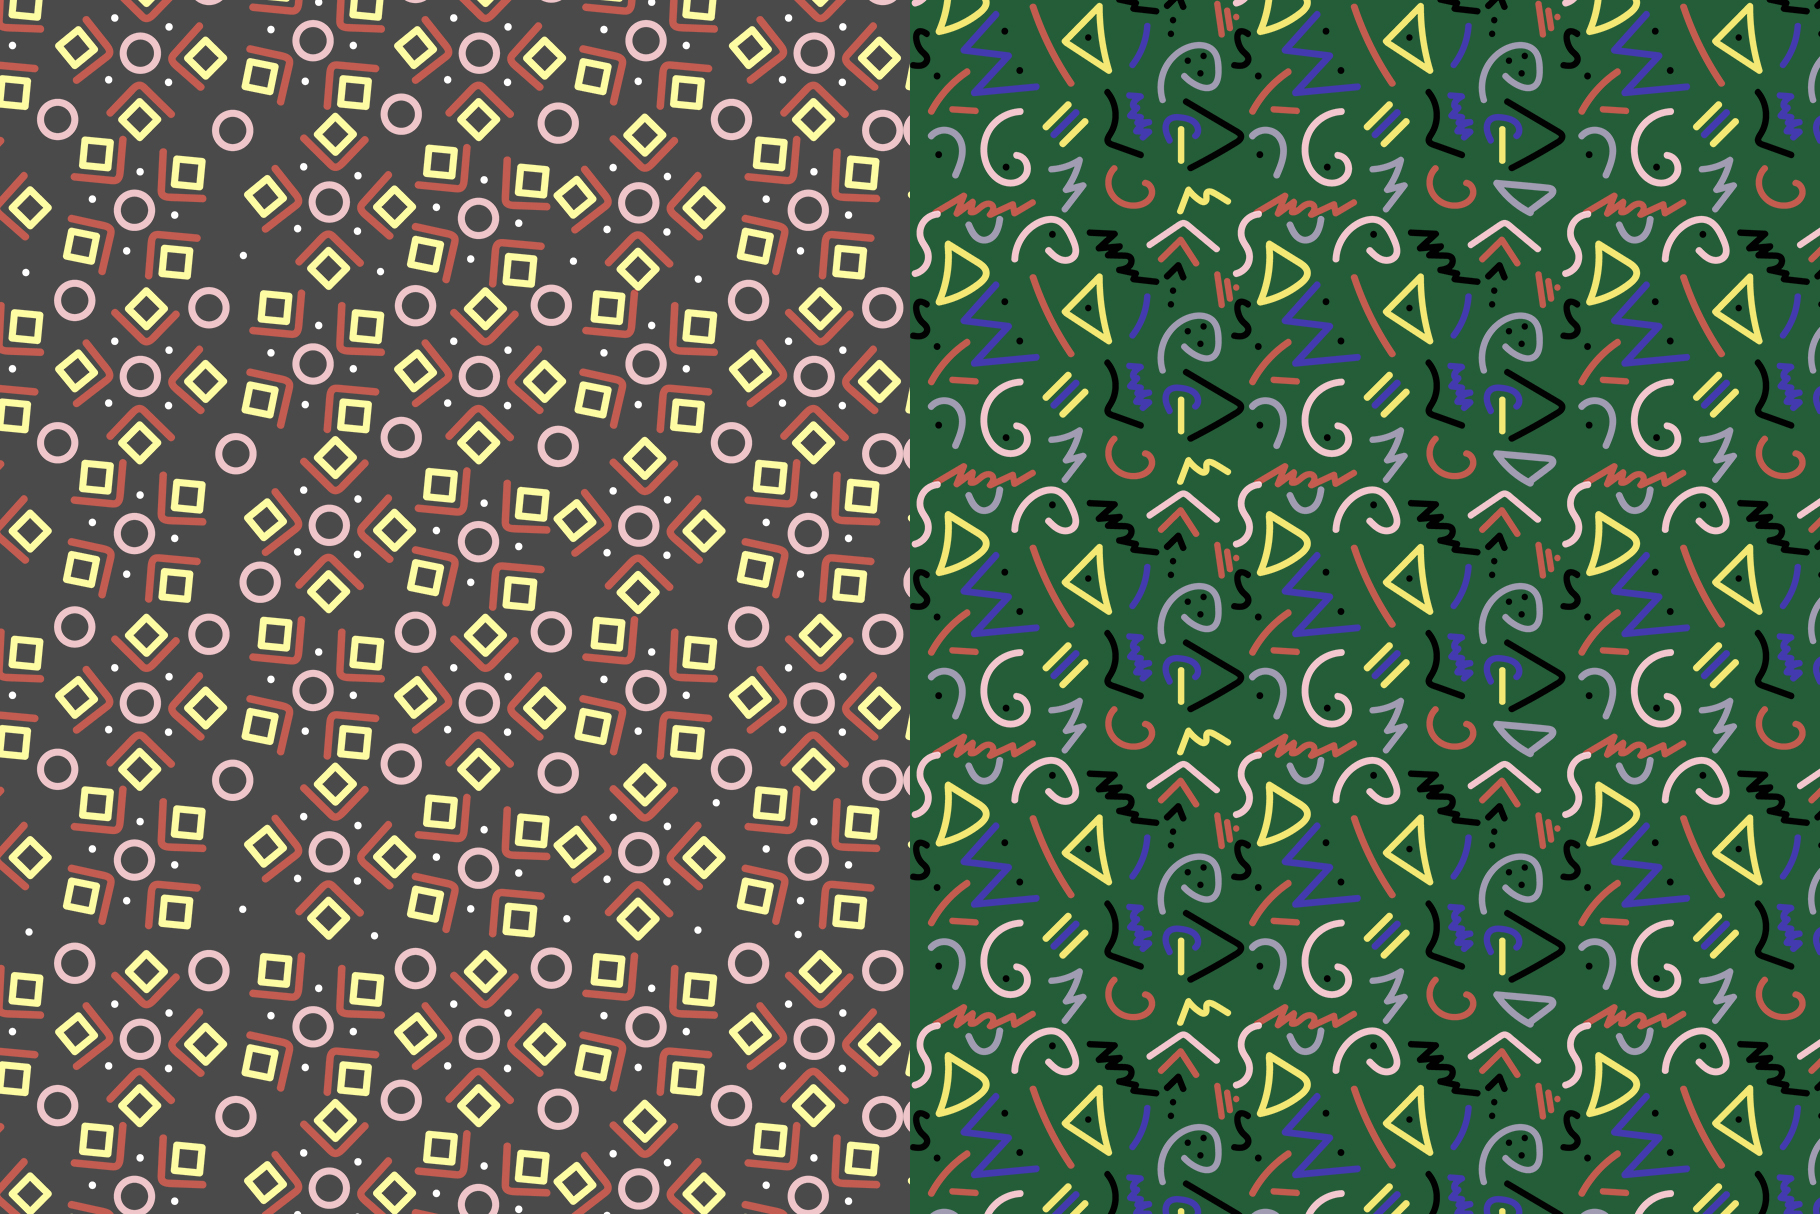 Abstract Geometric Patterns example image 4